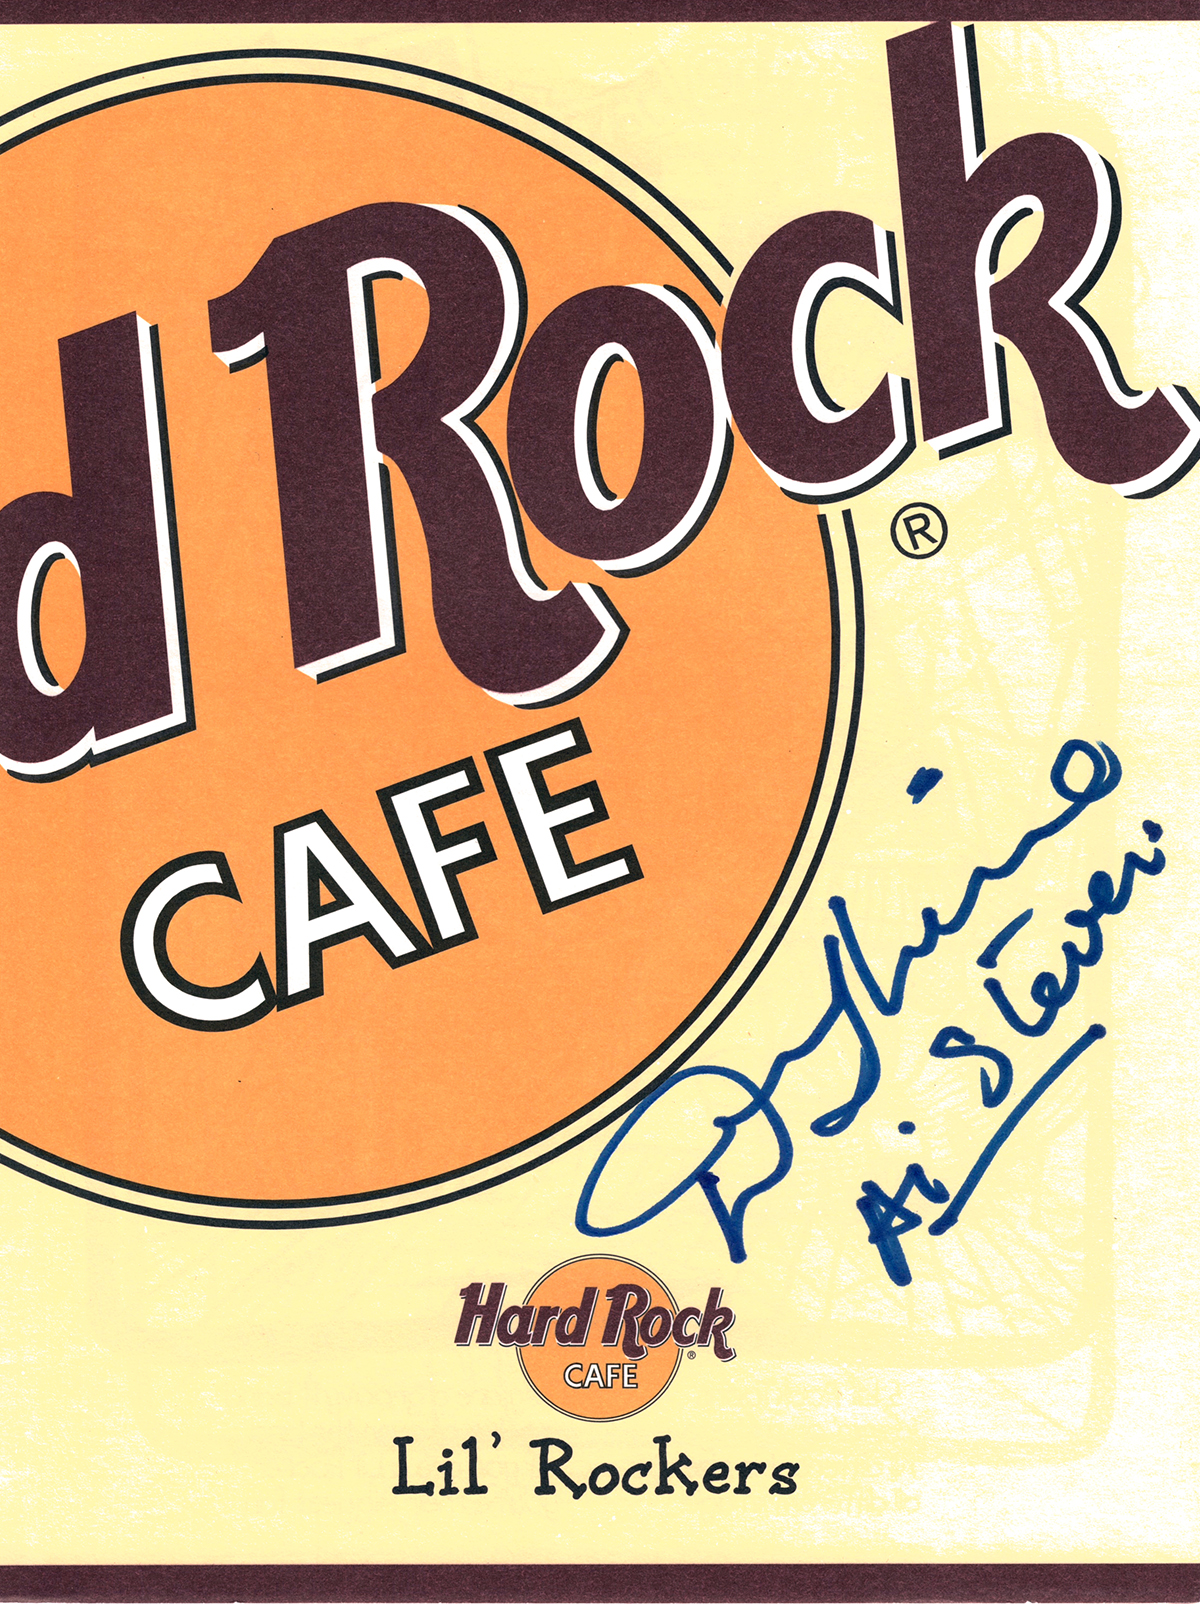 Hard Rock Cafe Menu - Denny Laine